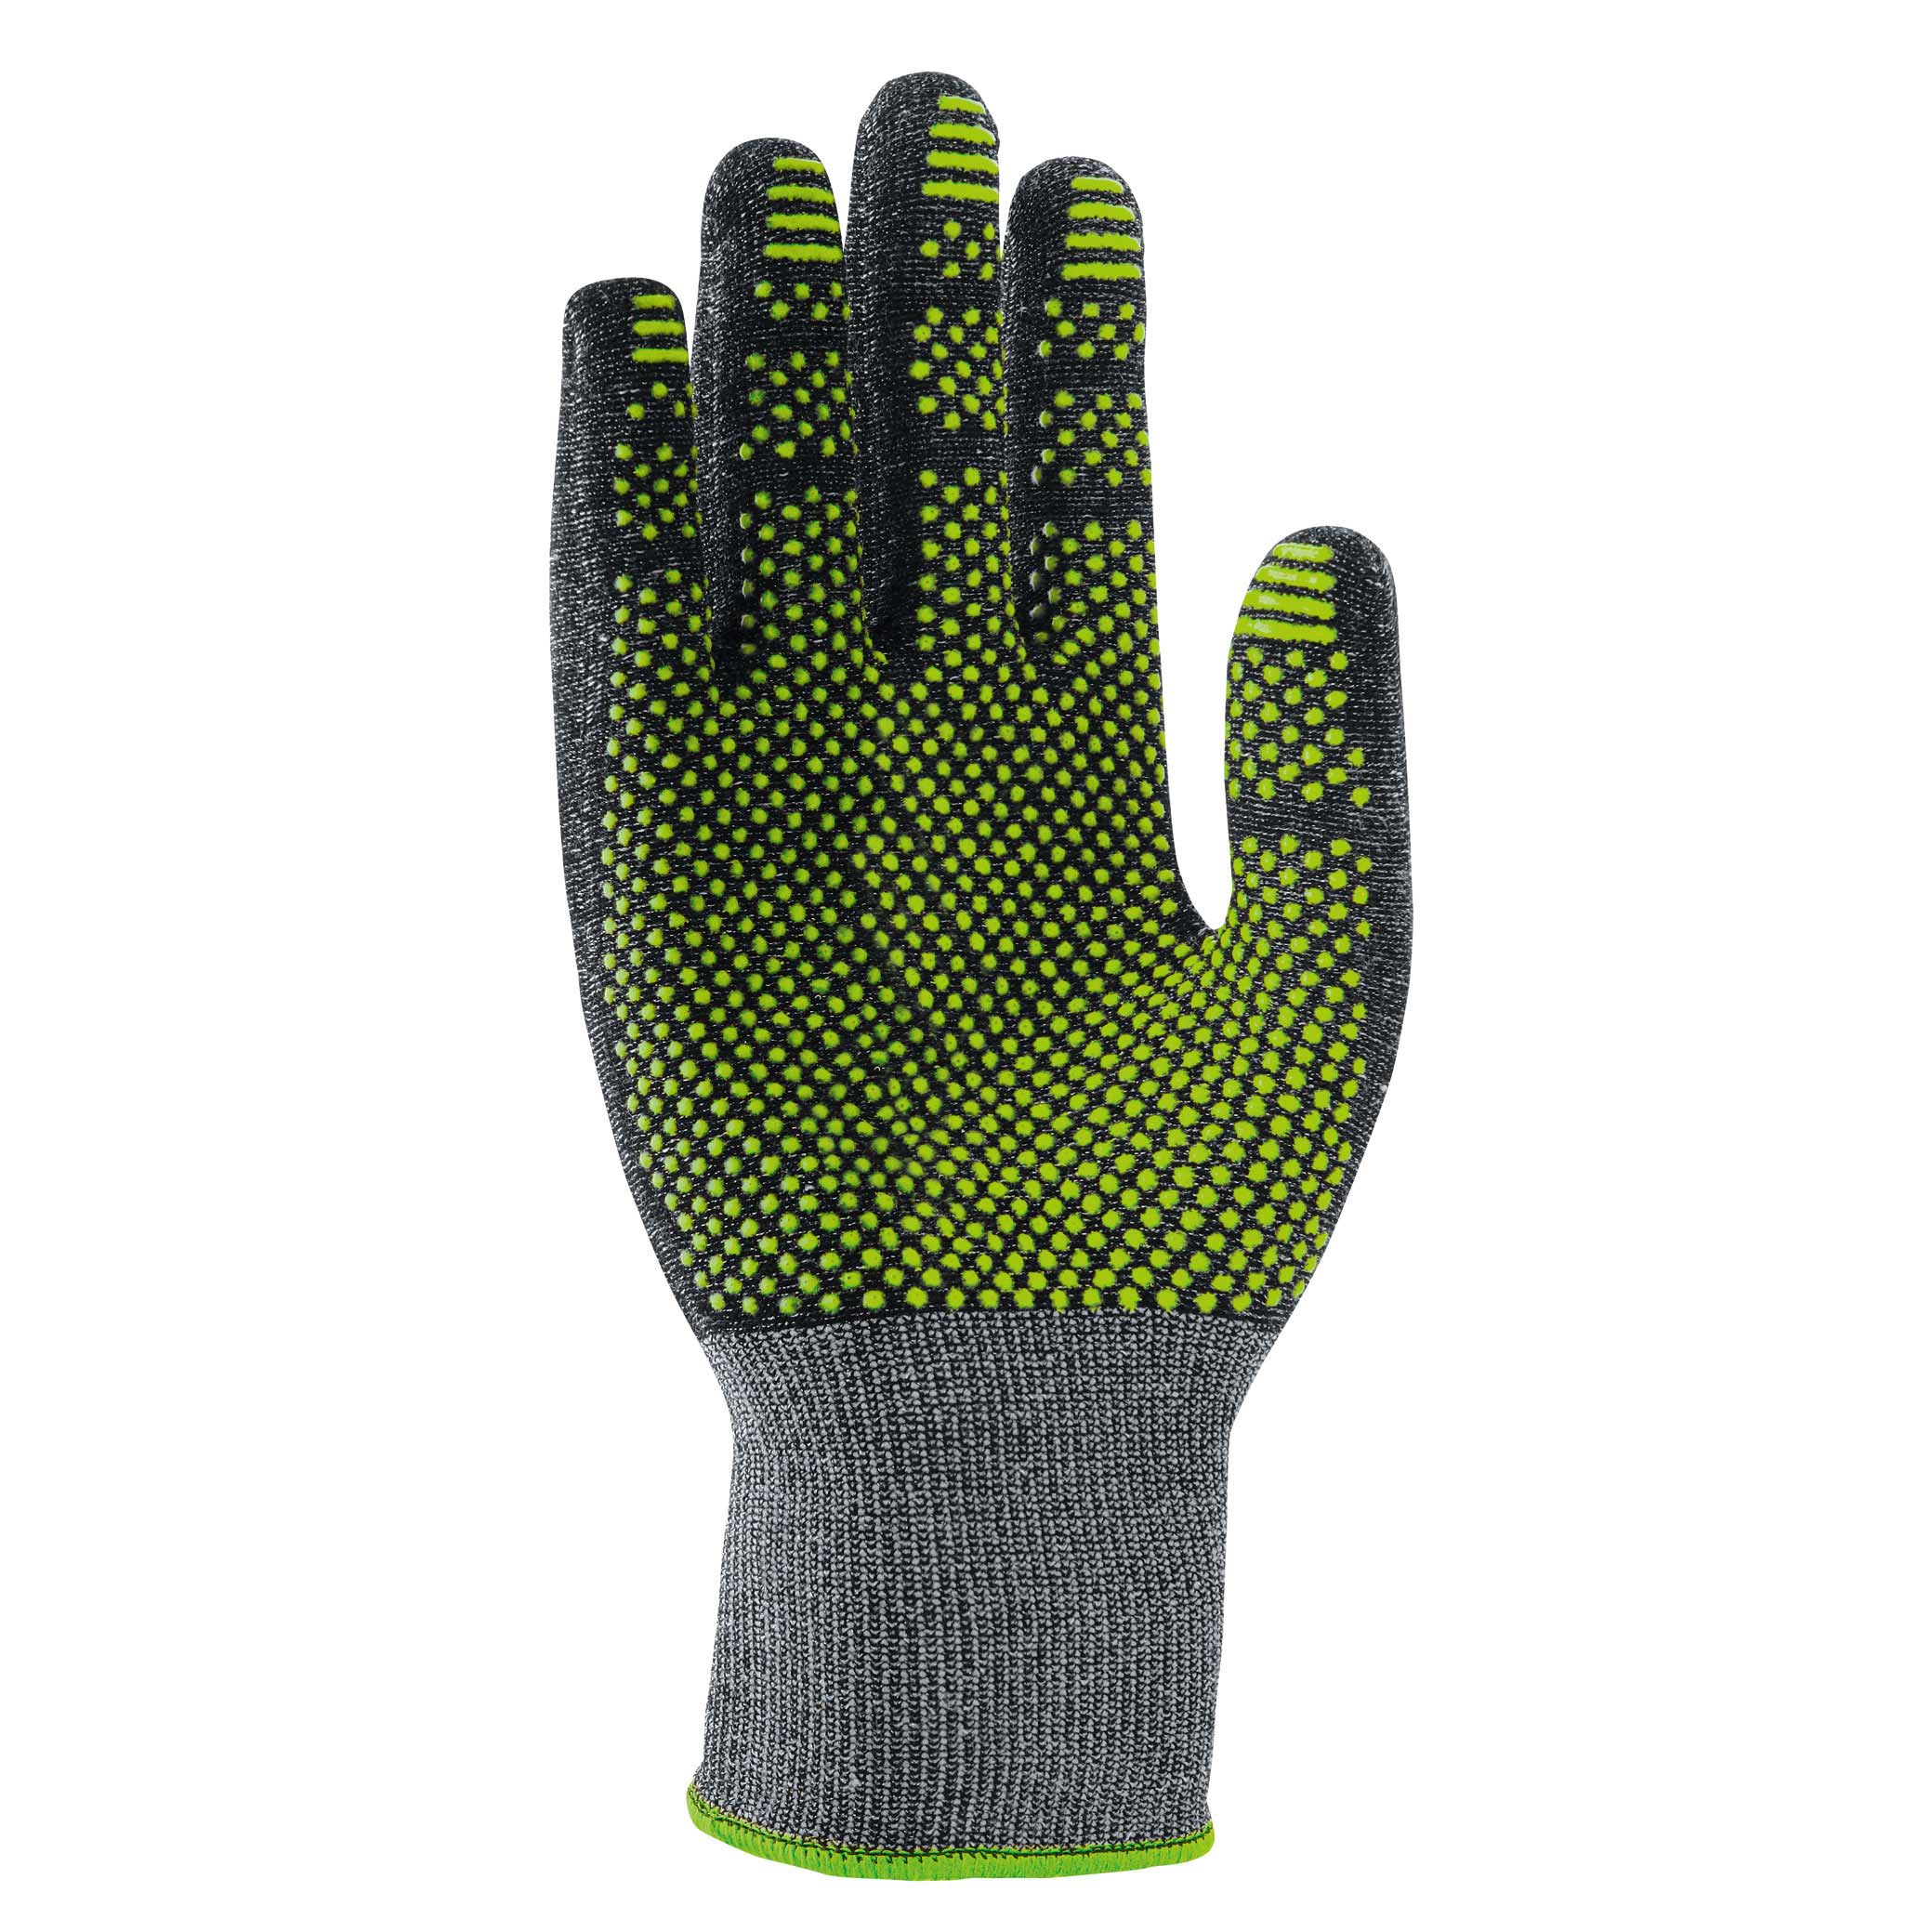 Uvex C300 Dry Cut Protection Glove Safety Gloves Uvex